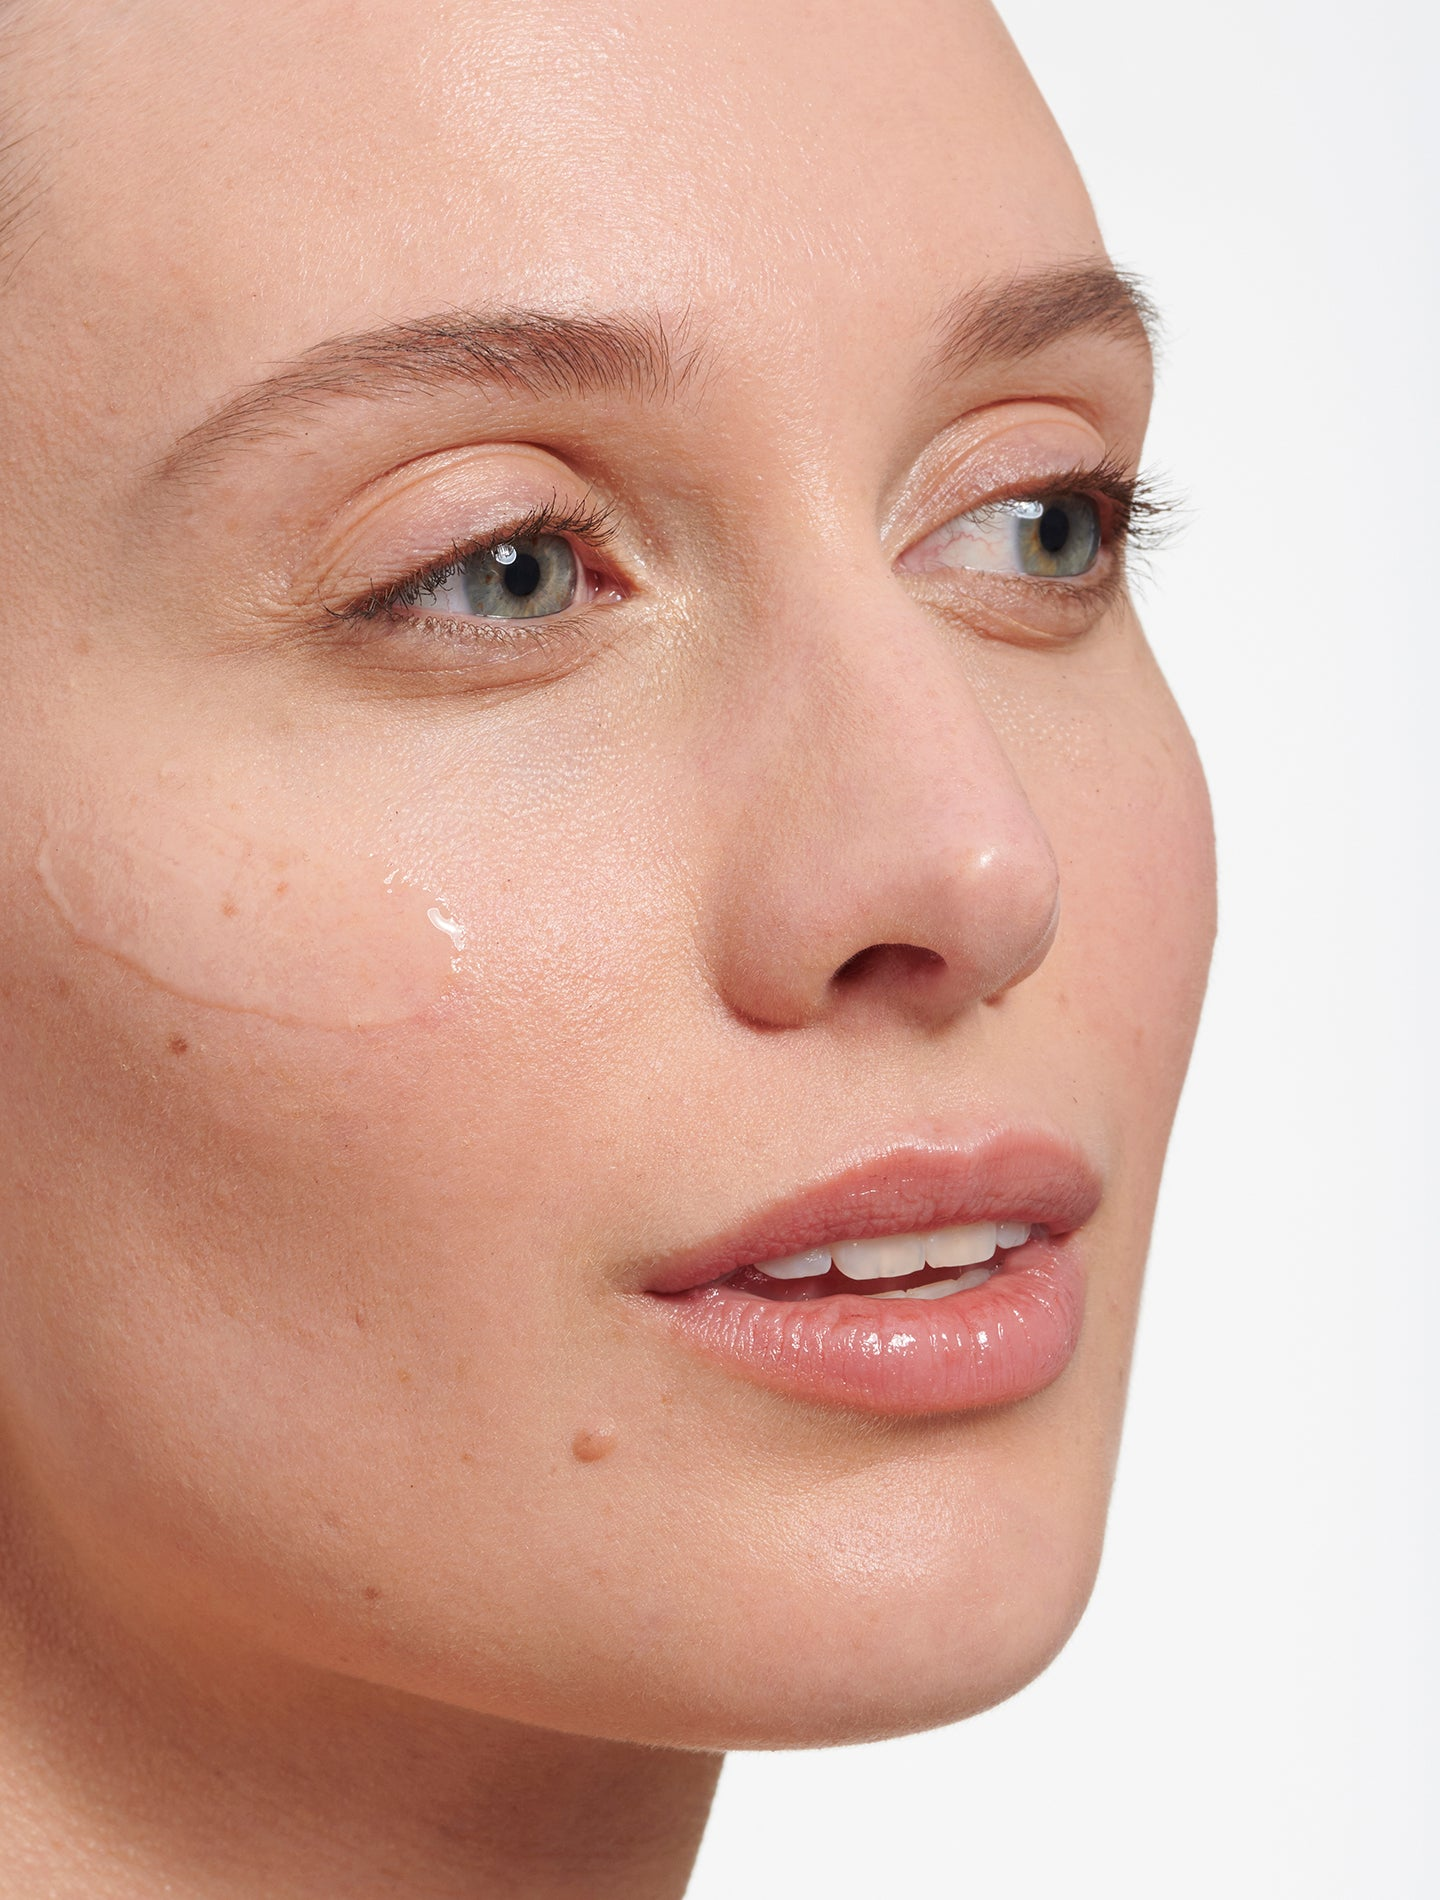 How to Make Your Skin Lighter in 7 Effective Ways